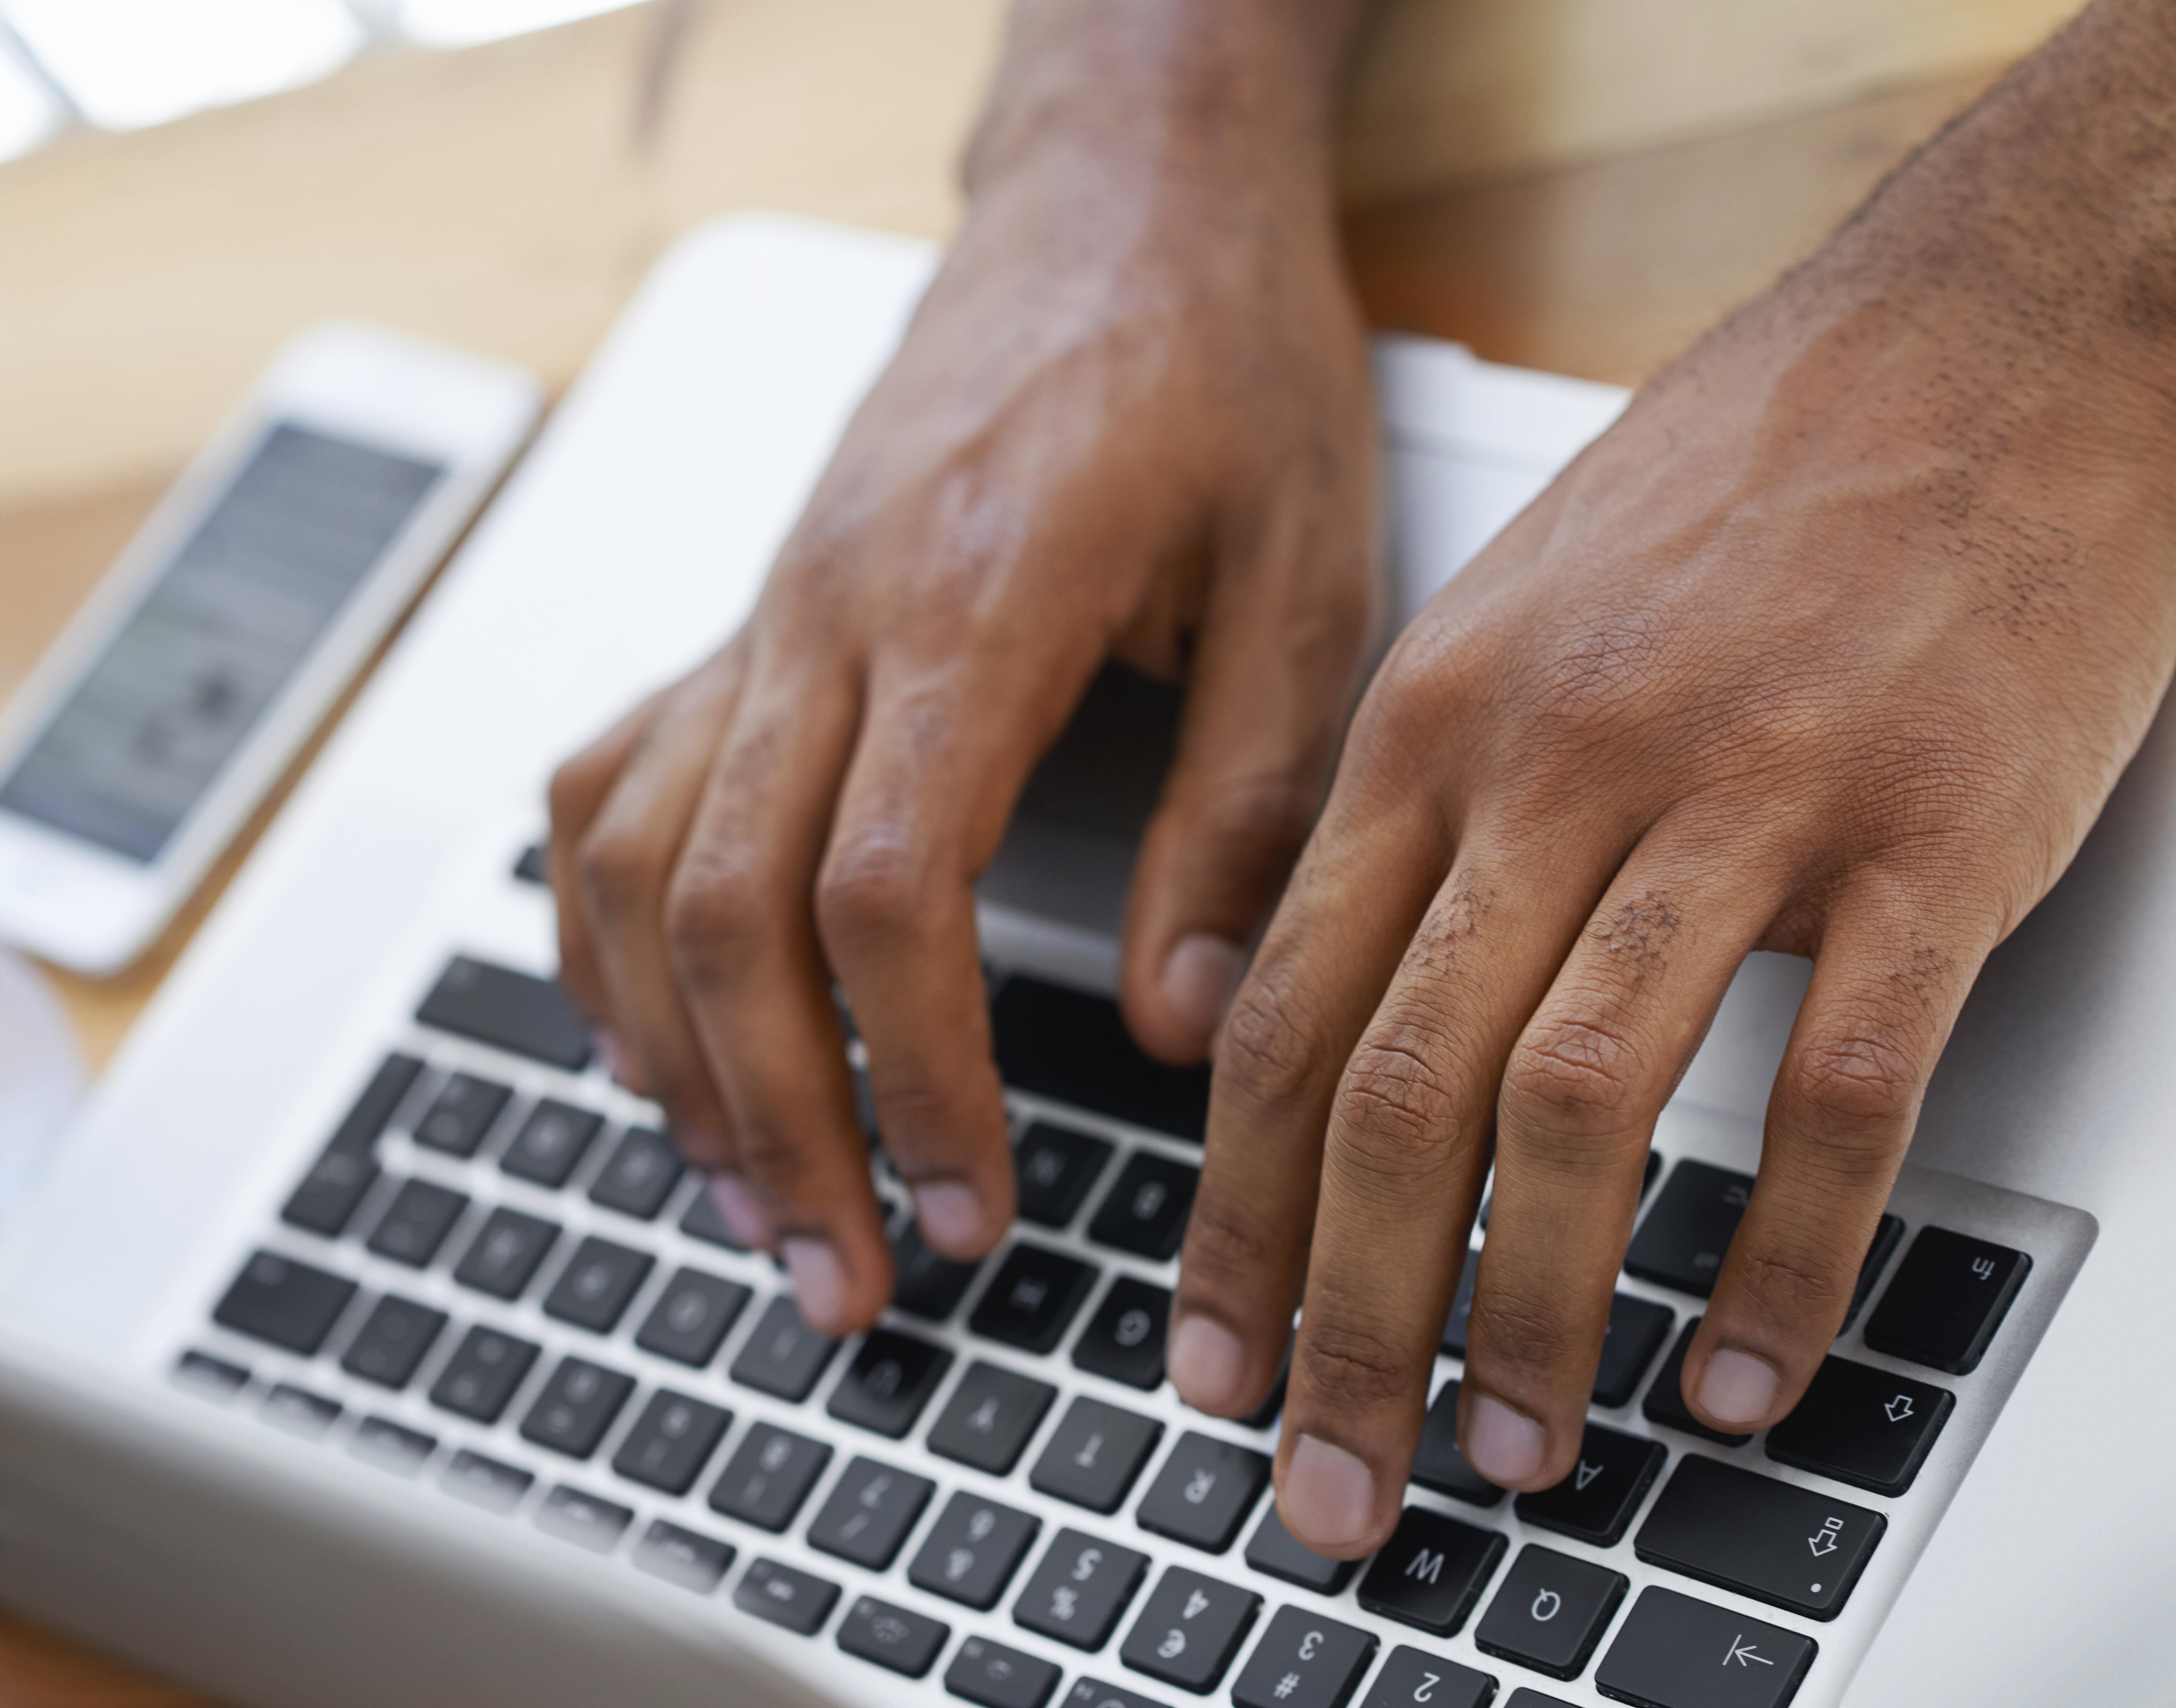 Cropped view of a businessman's hands as he types on his laptop